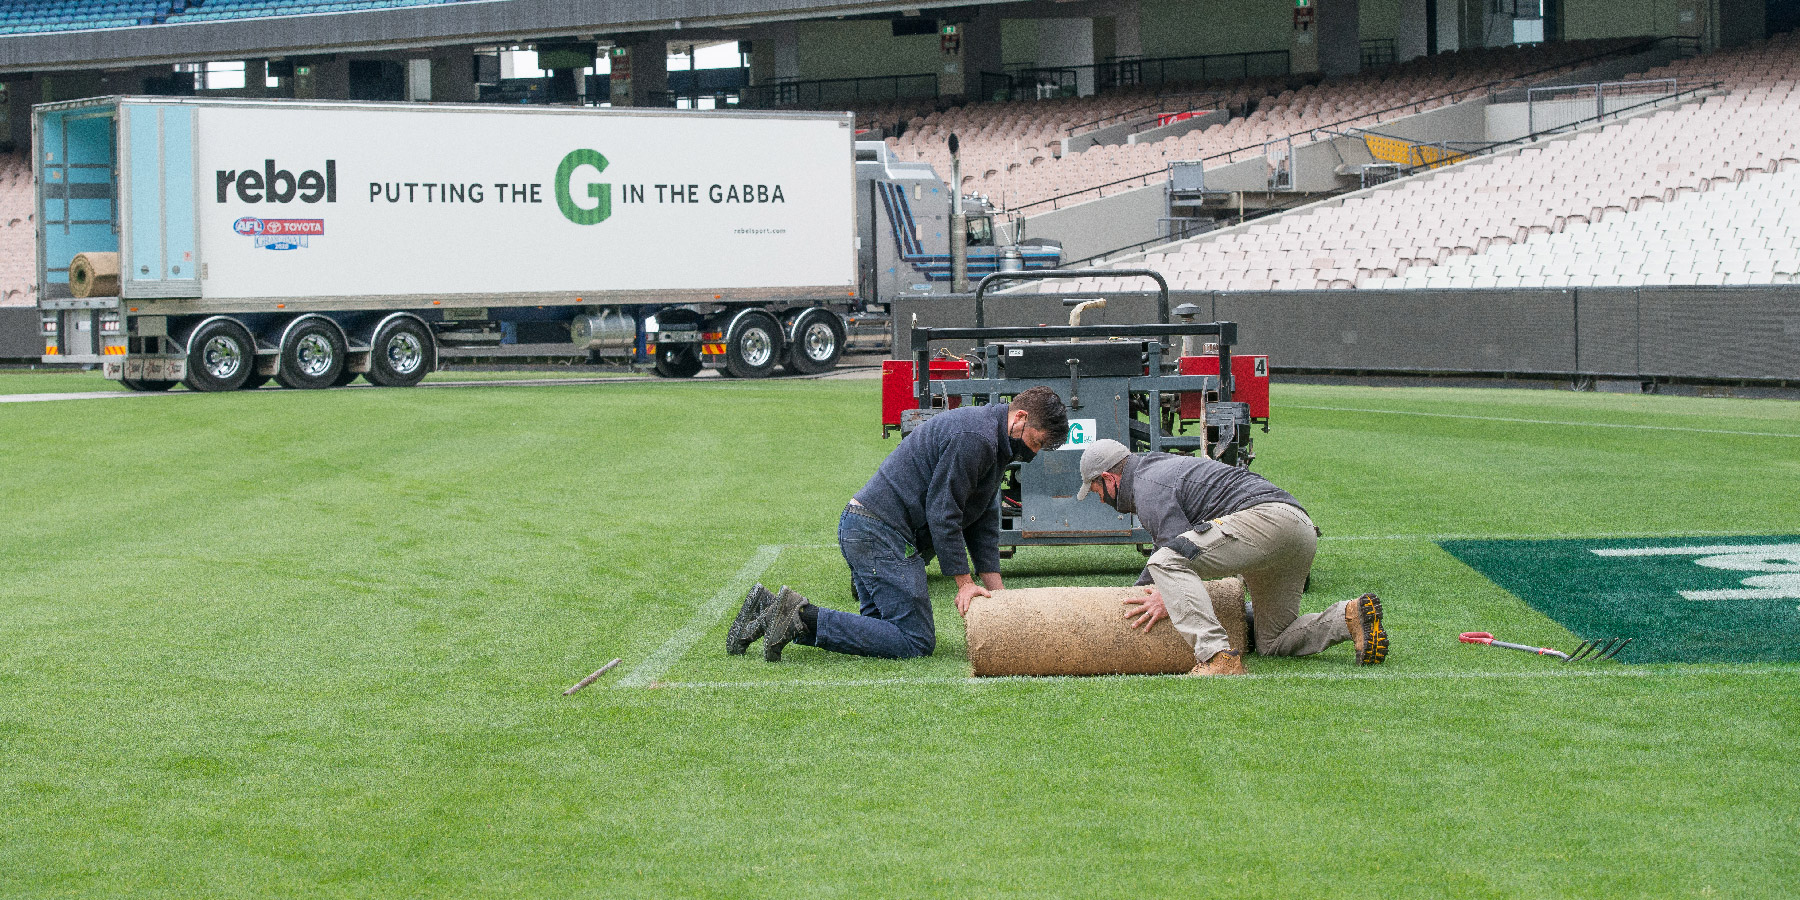 Turf being lifted from the MCG